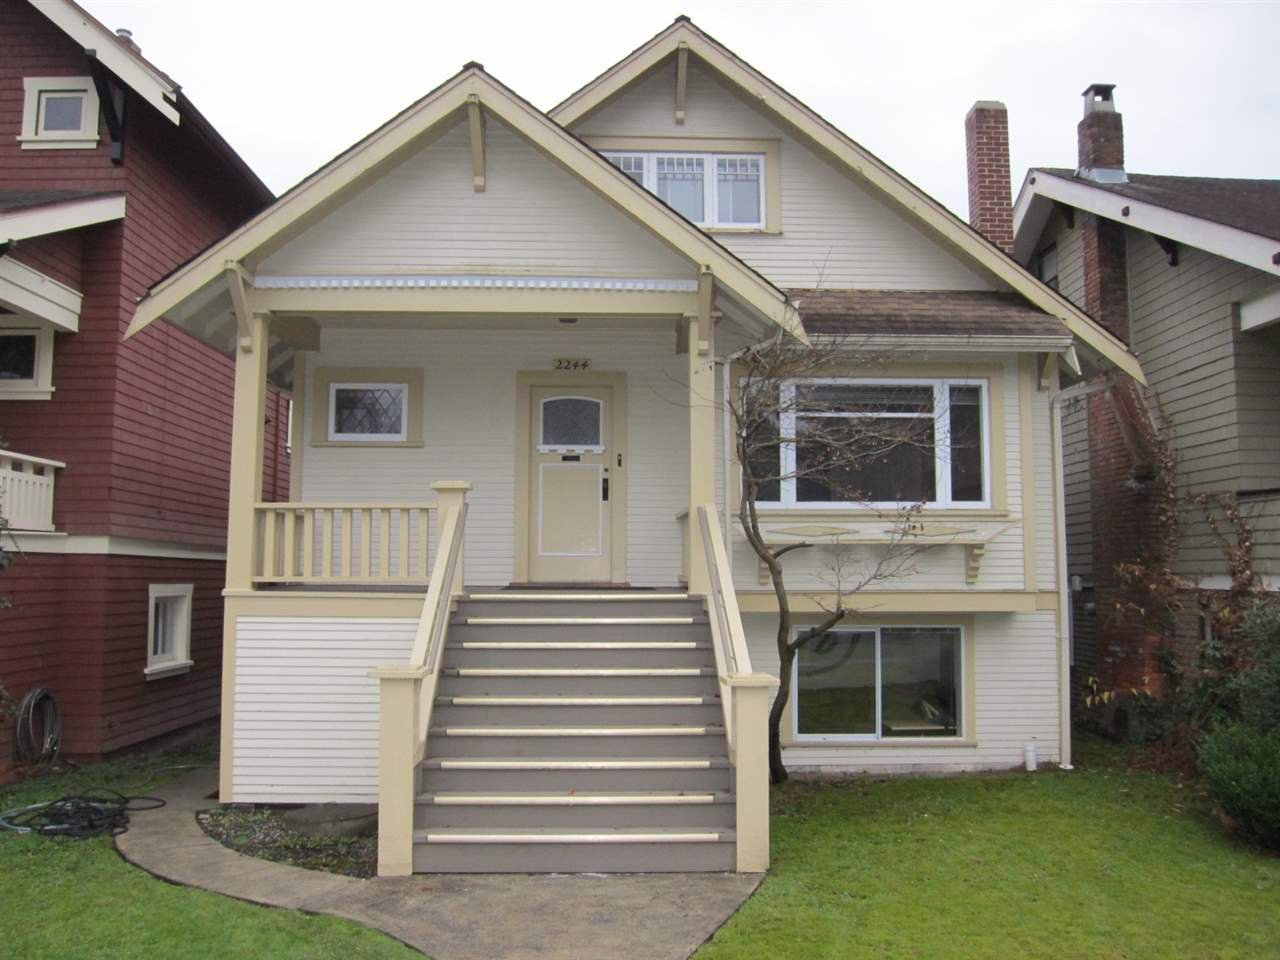 Main Photo: 2244 W 37TH Avenue in Vancouver: Kerrisdale House for sale (Vancouver West)  : MLS®# R2036976